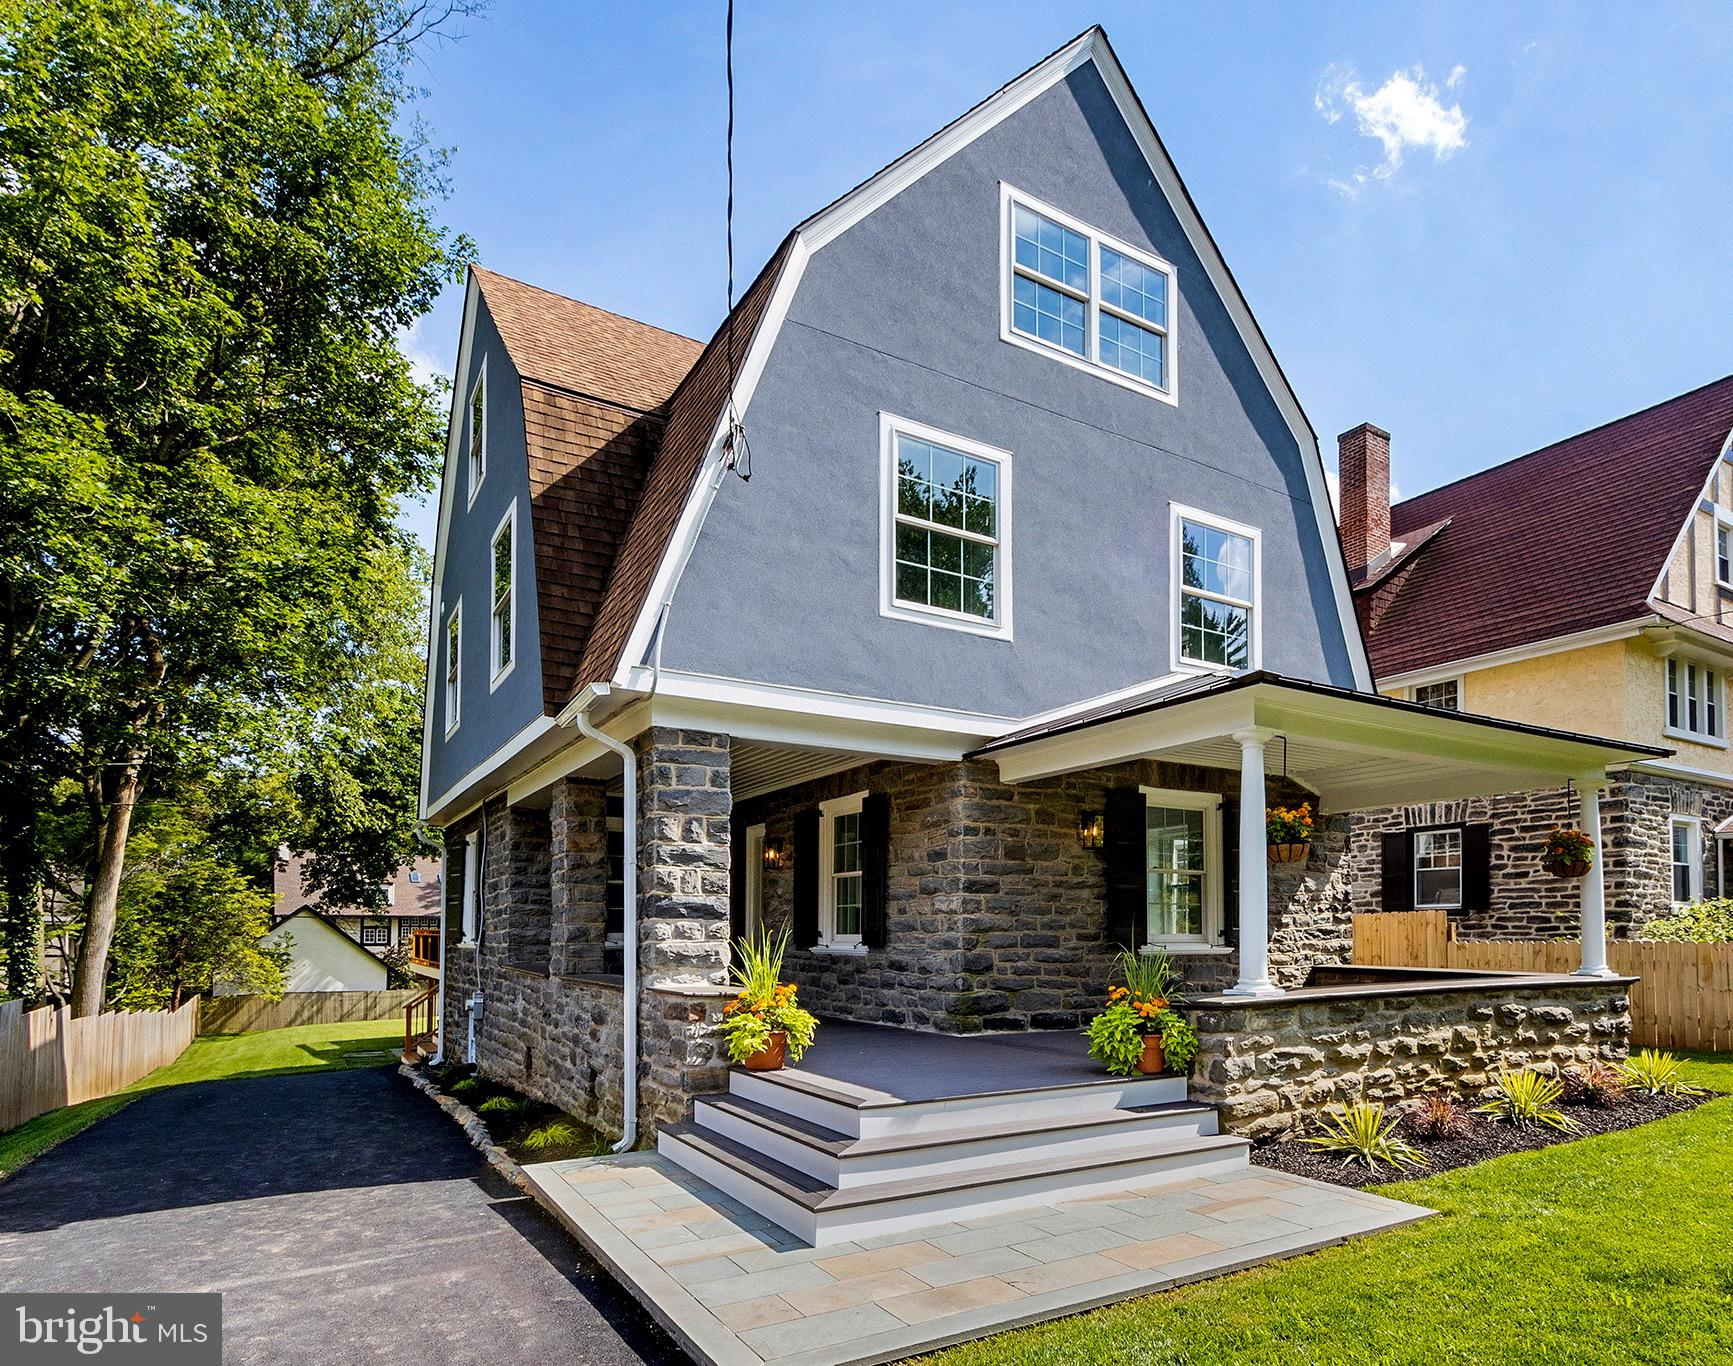 720 S HIGHLAND AVENUE, MERION STATION, PA 19066